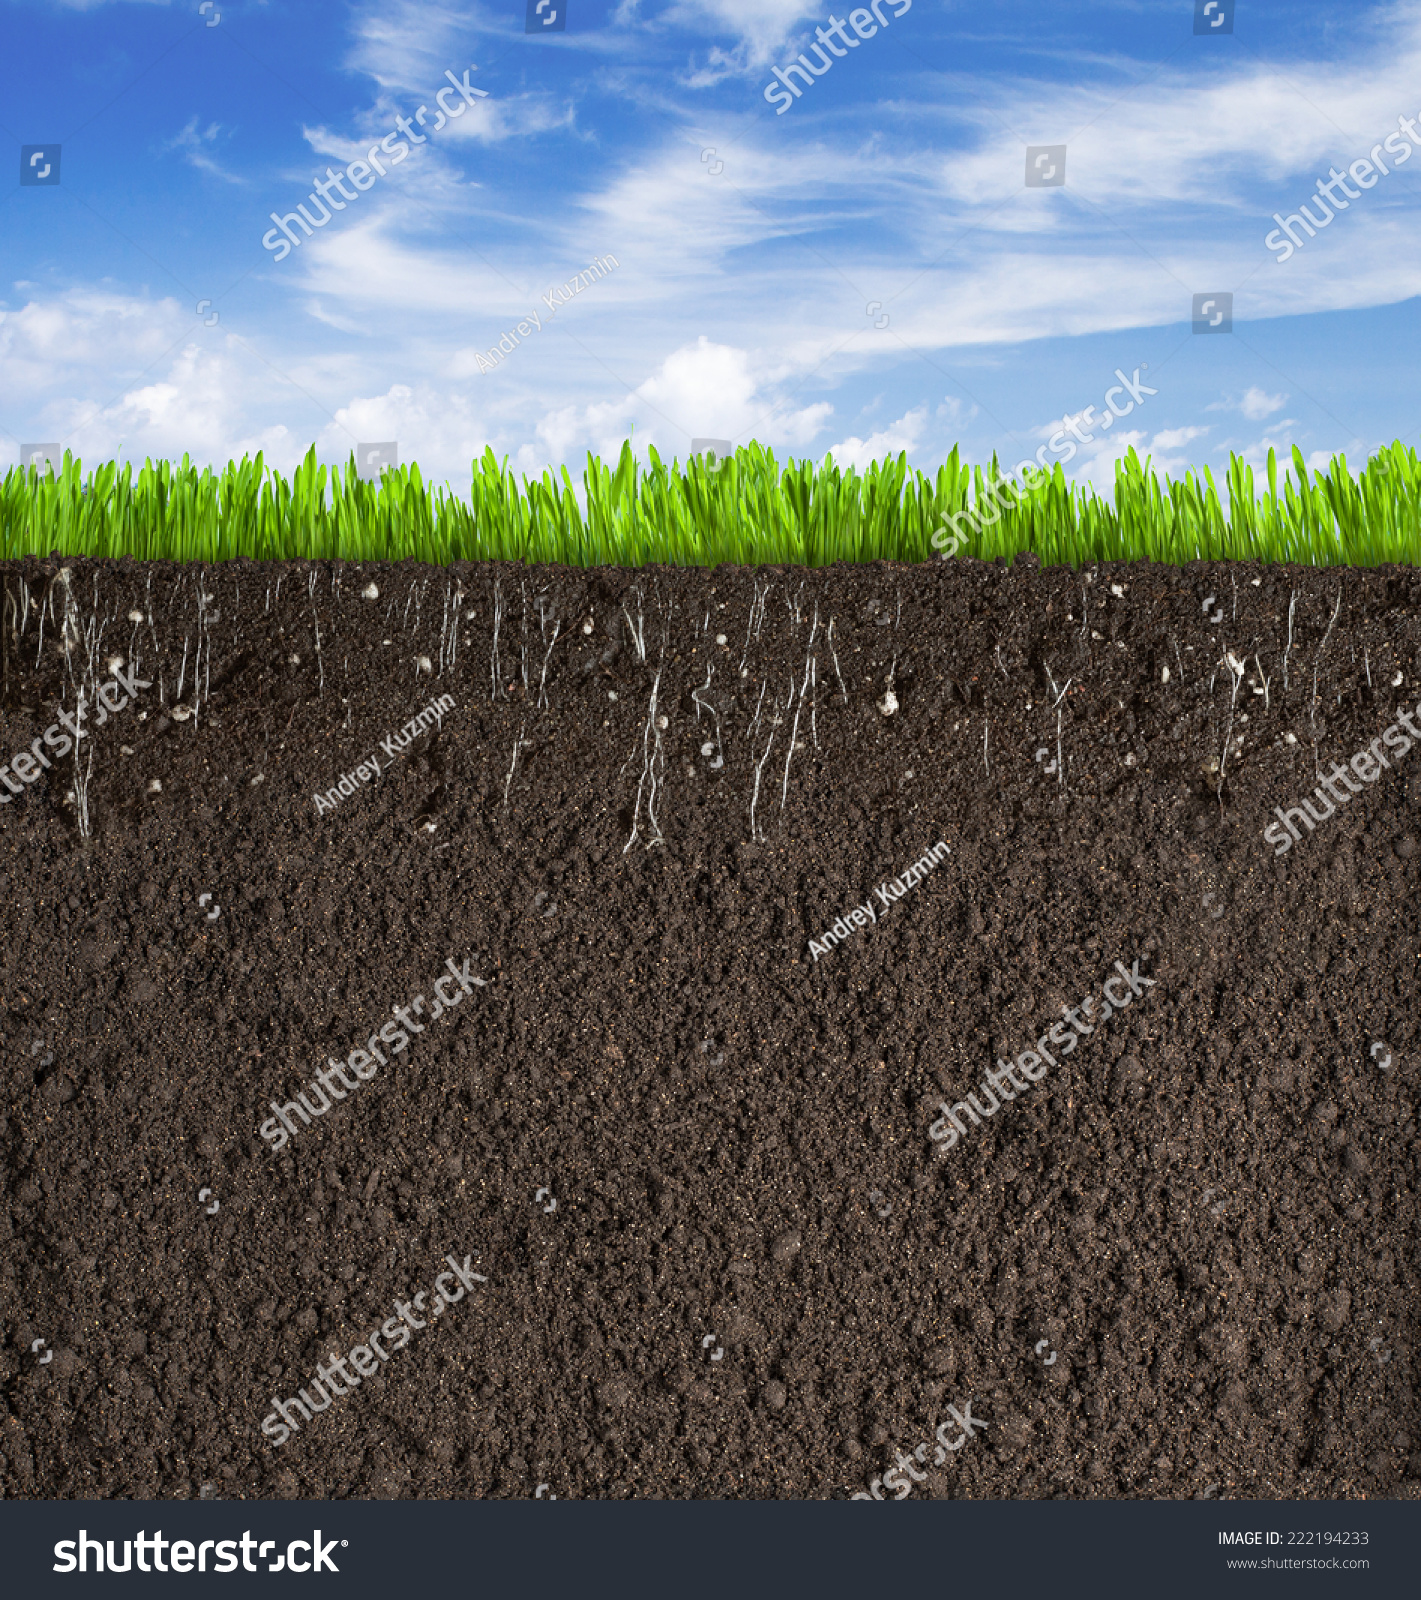 Soil Or Dirt Section With Grass Under Sky Stock Photo